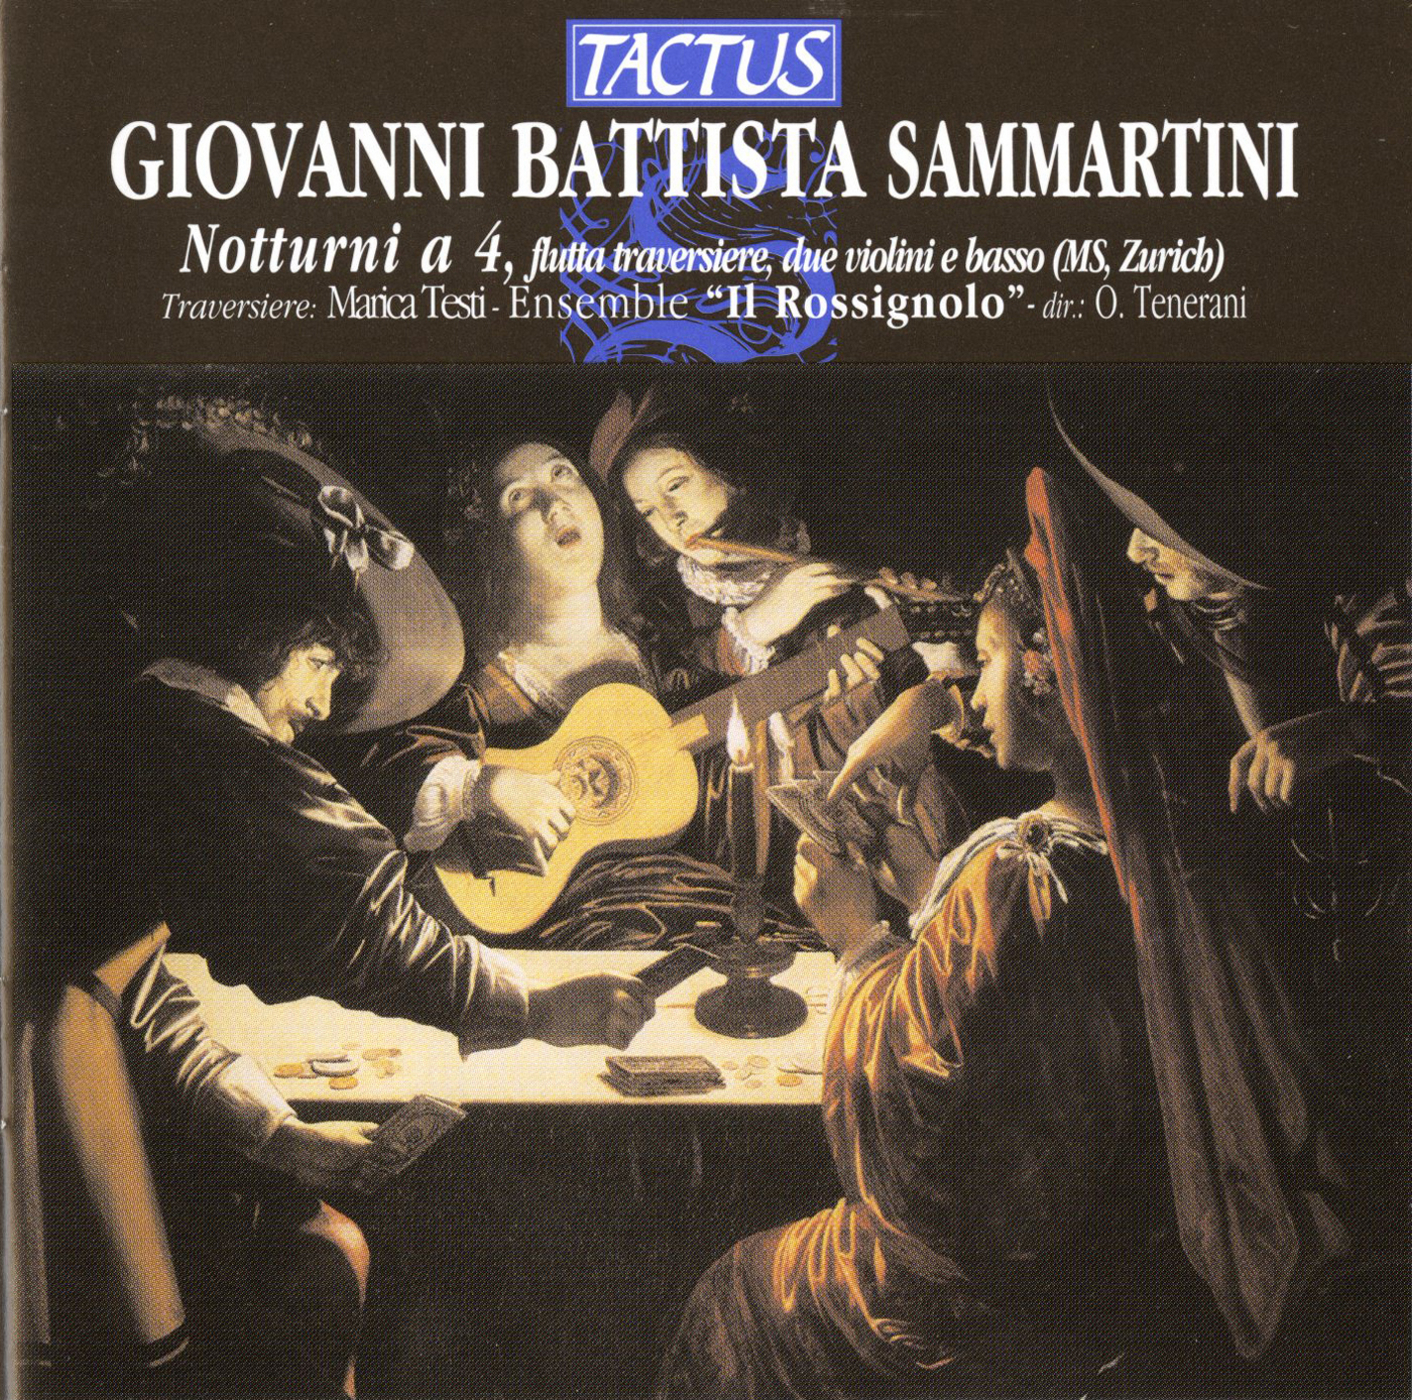 Sonata call'd Notturni in G Major, Op. 9, No. 1, Sonata call'd Notturni in G Major, Op. 9, No. 1: II. Spiritoso